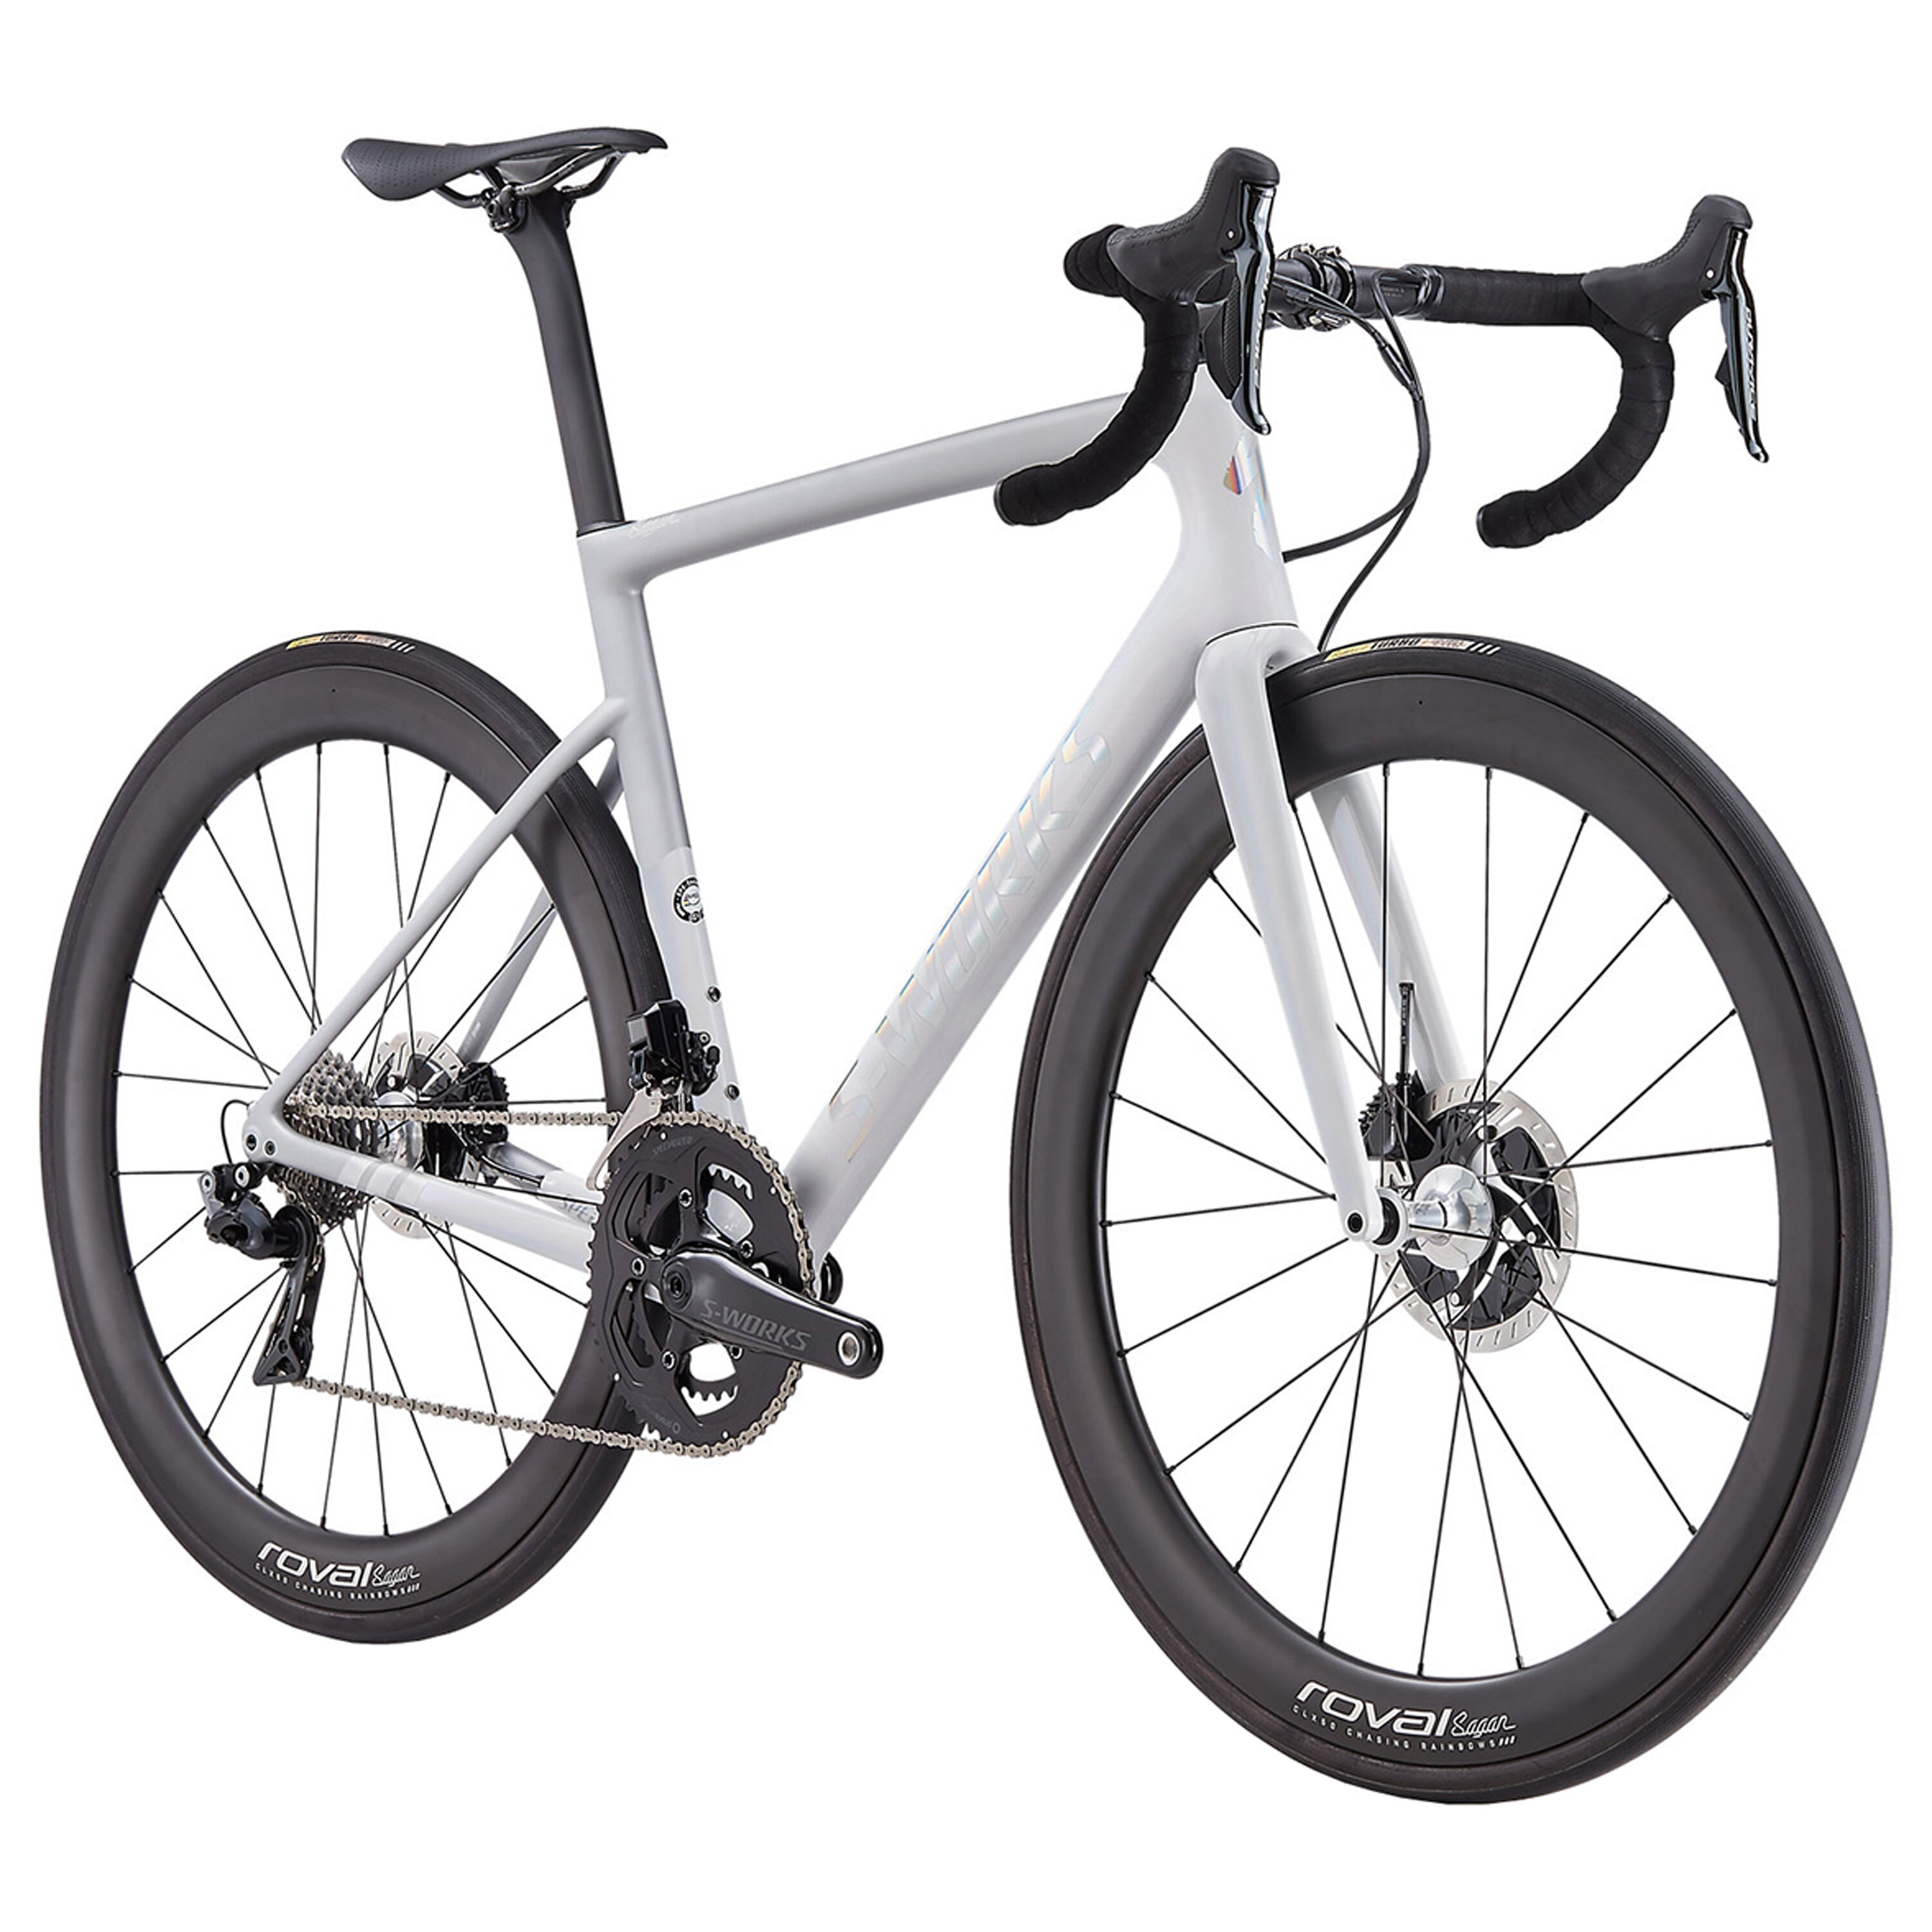 4af891e7ec7 ... Specialized S-Works Tarmac Disc Sagan Collection LTD bicycle 2019 ...